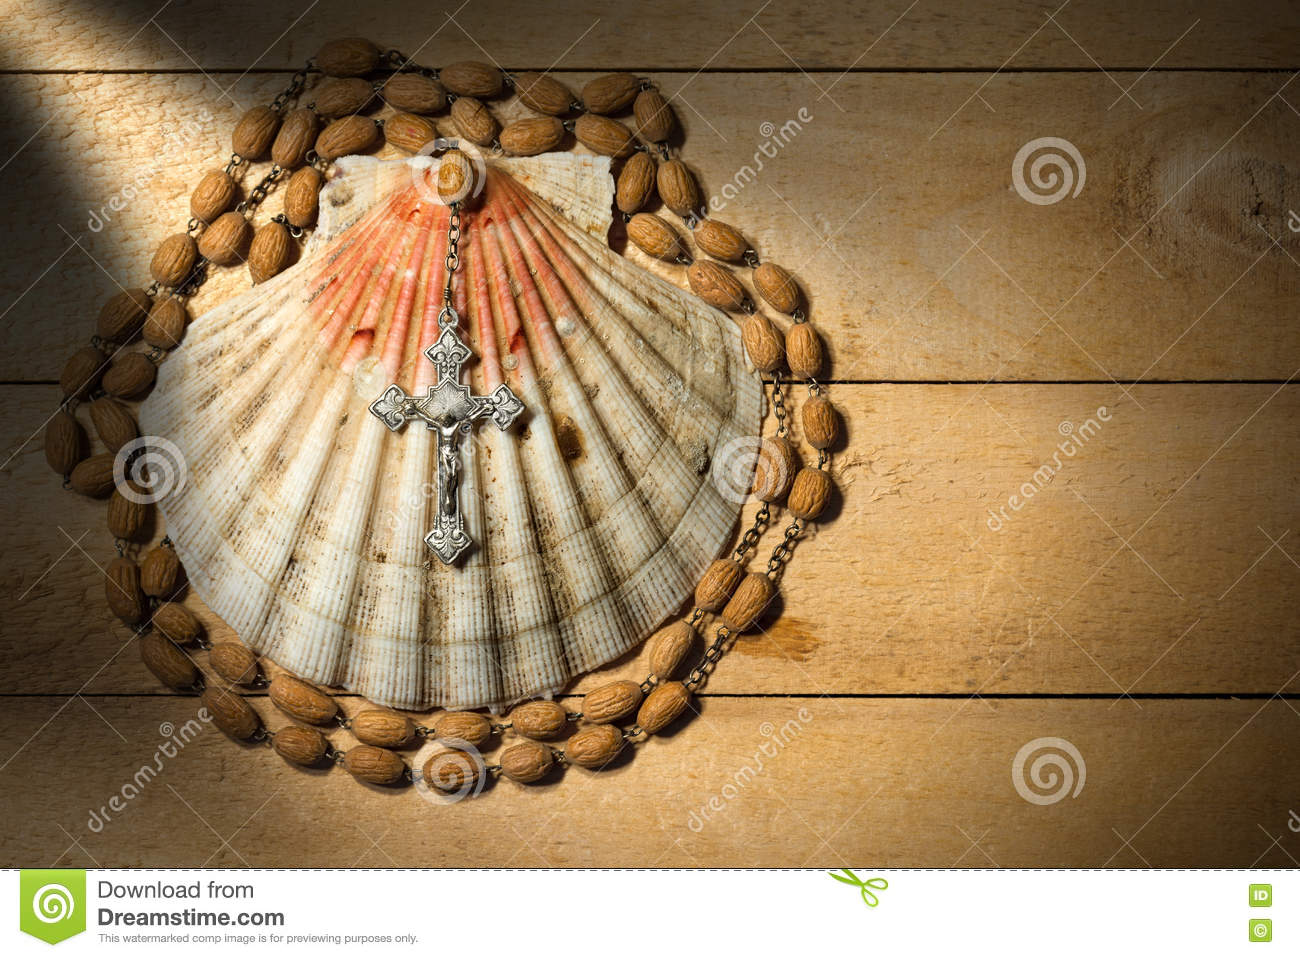 Christian pilgrimage symbols stock image image of planks concept royalty free stock photo biocorpaavc Image collections